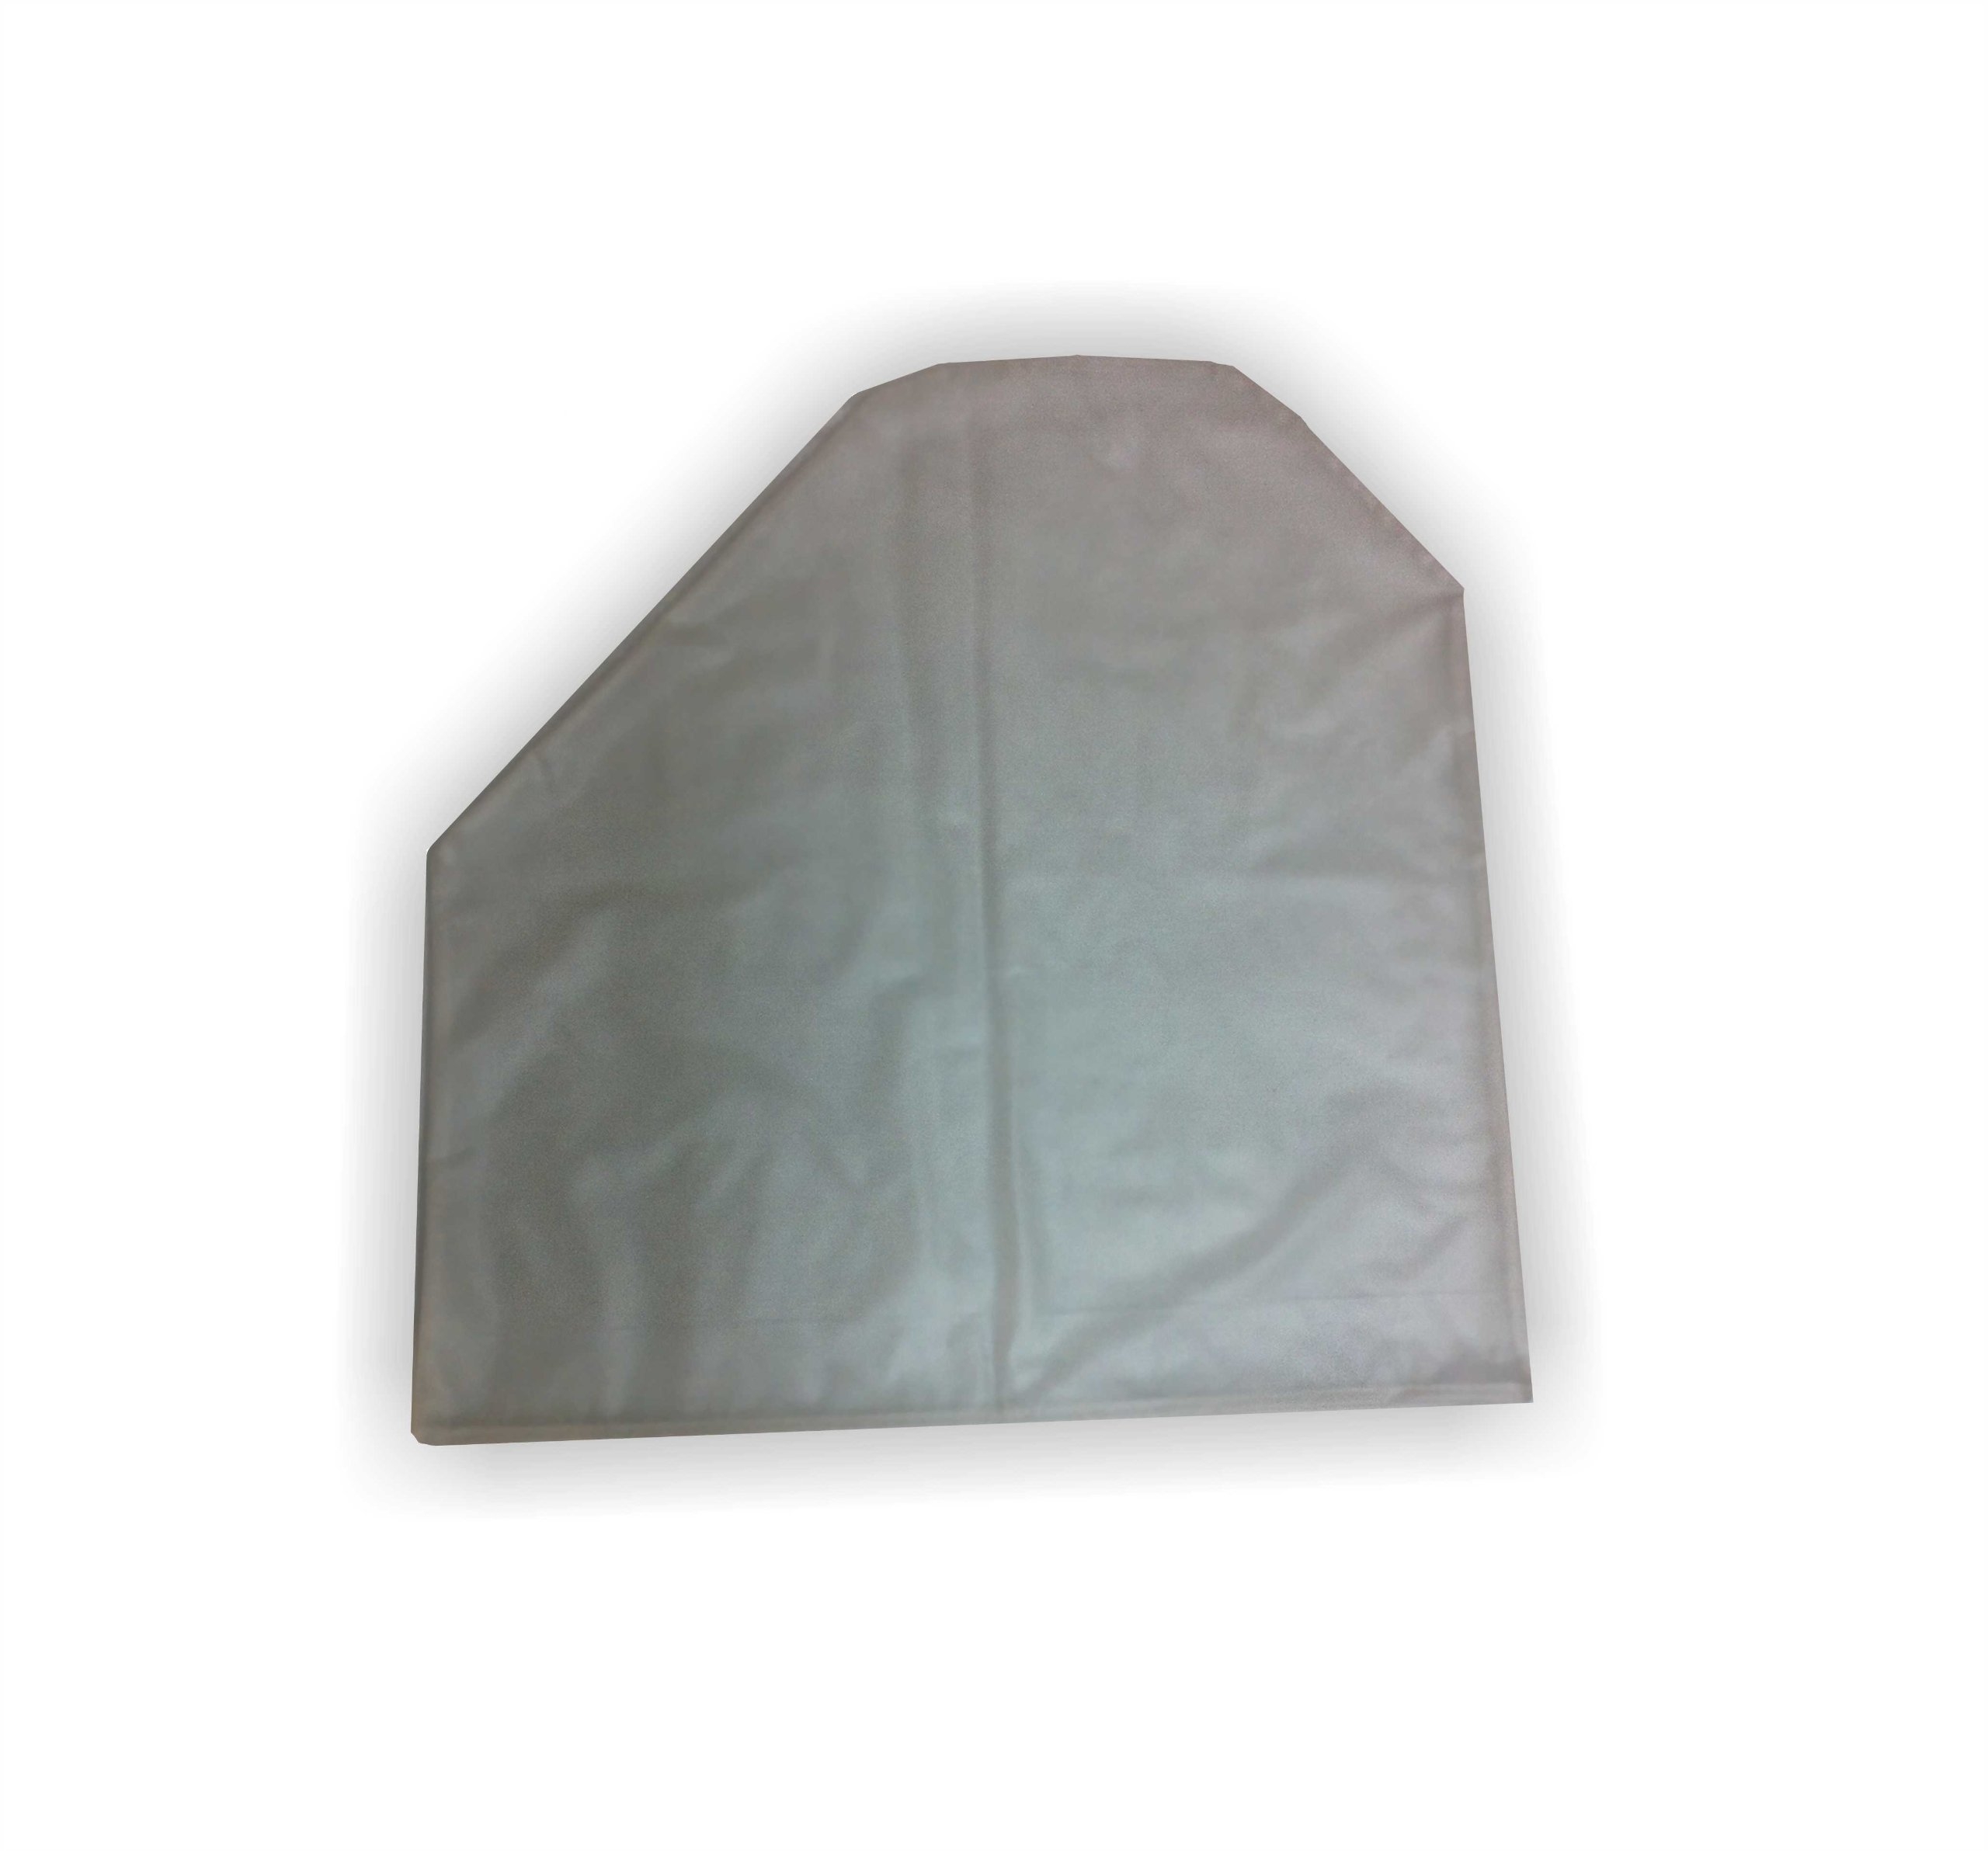 Dust Cover for Small and Reduced Sized Microscopes 19''wide X 19'' High by Viziflex